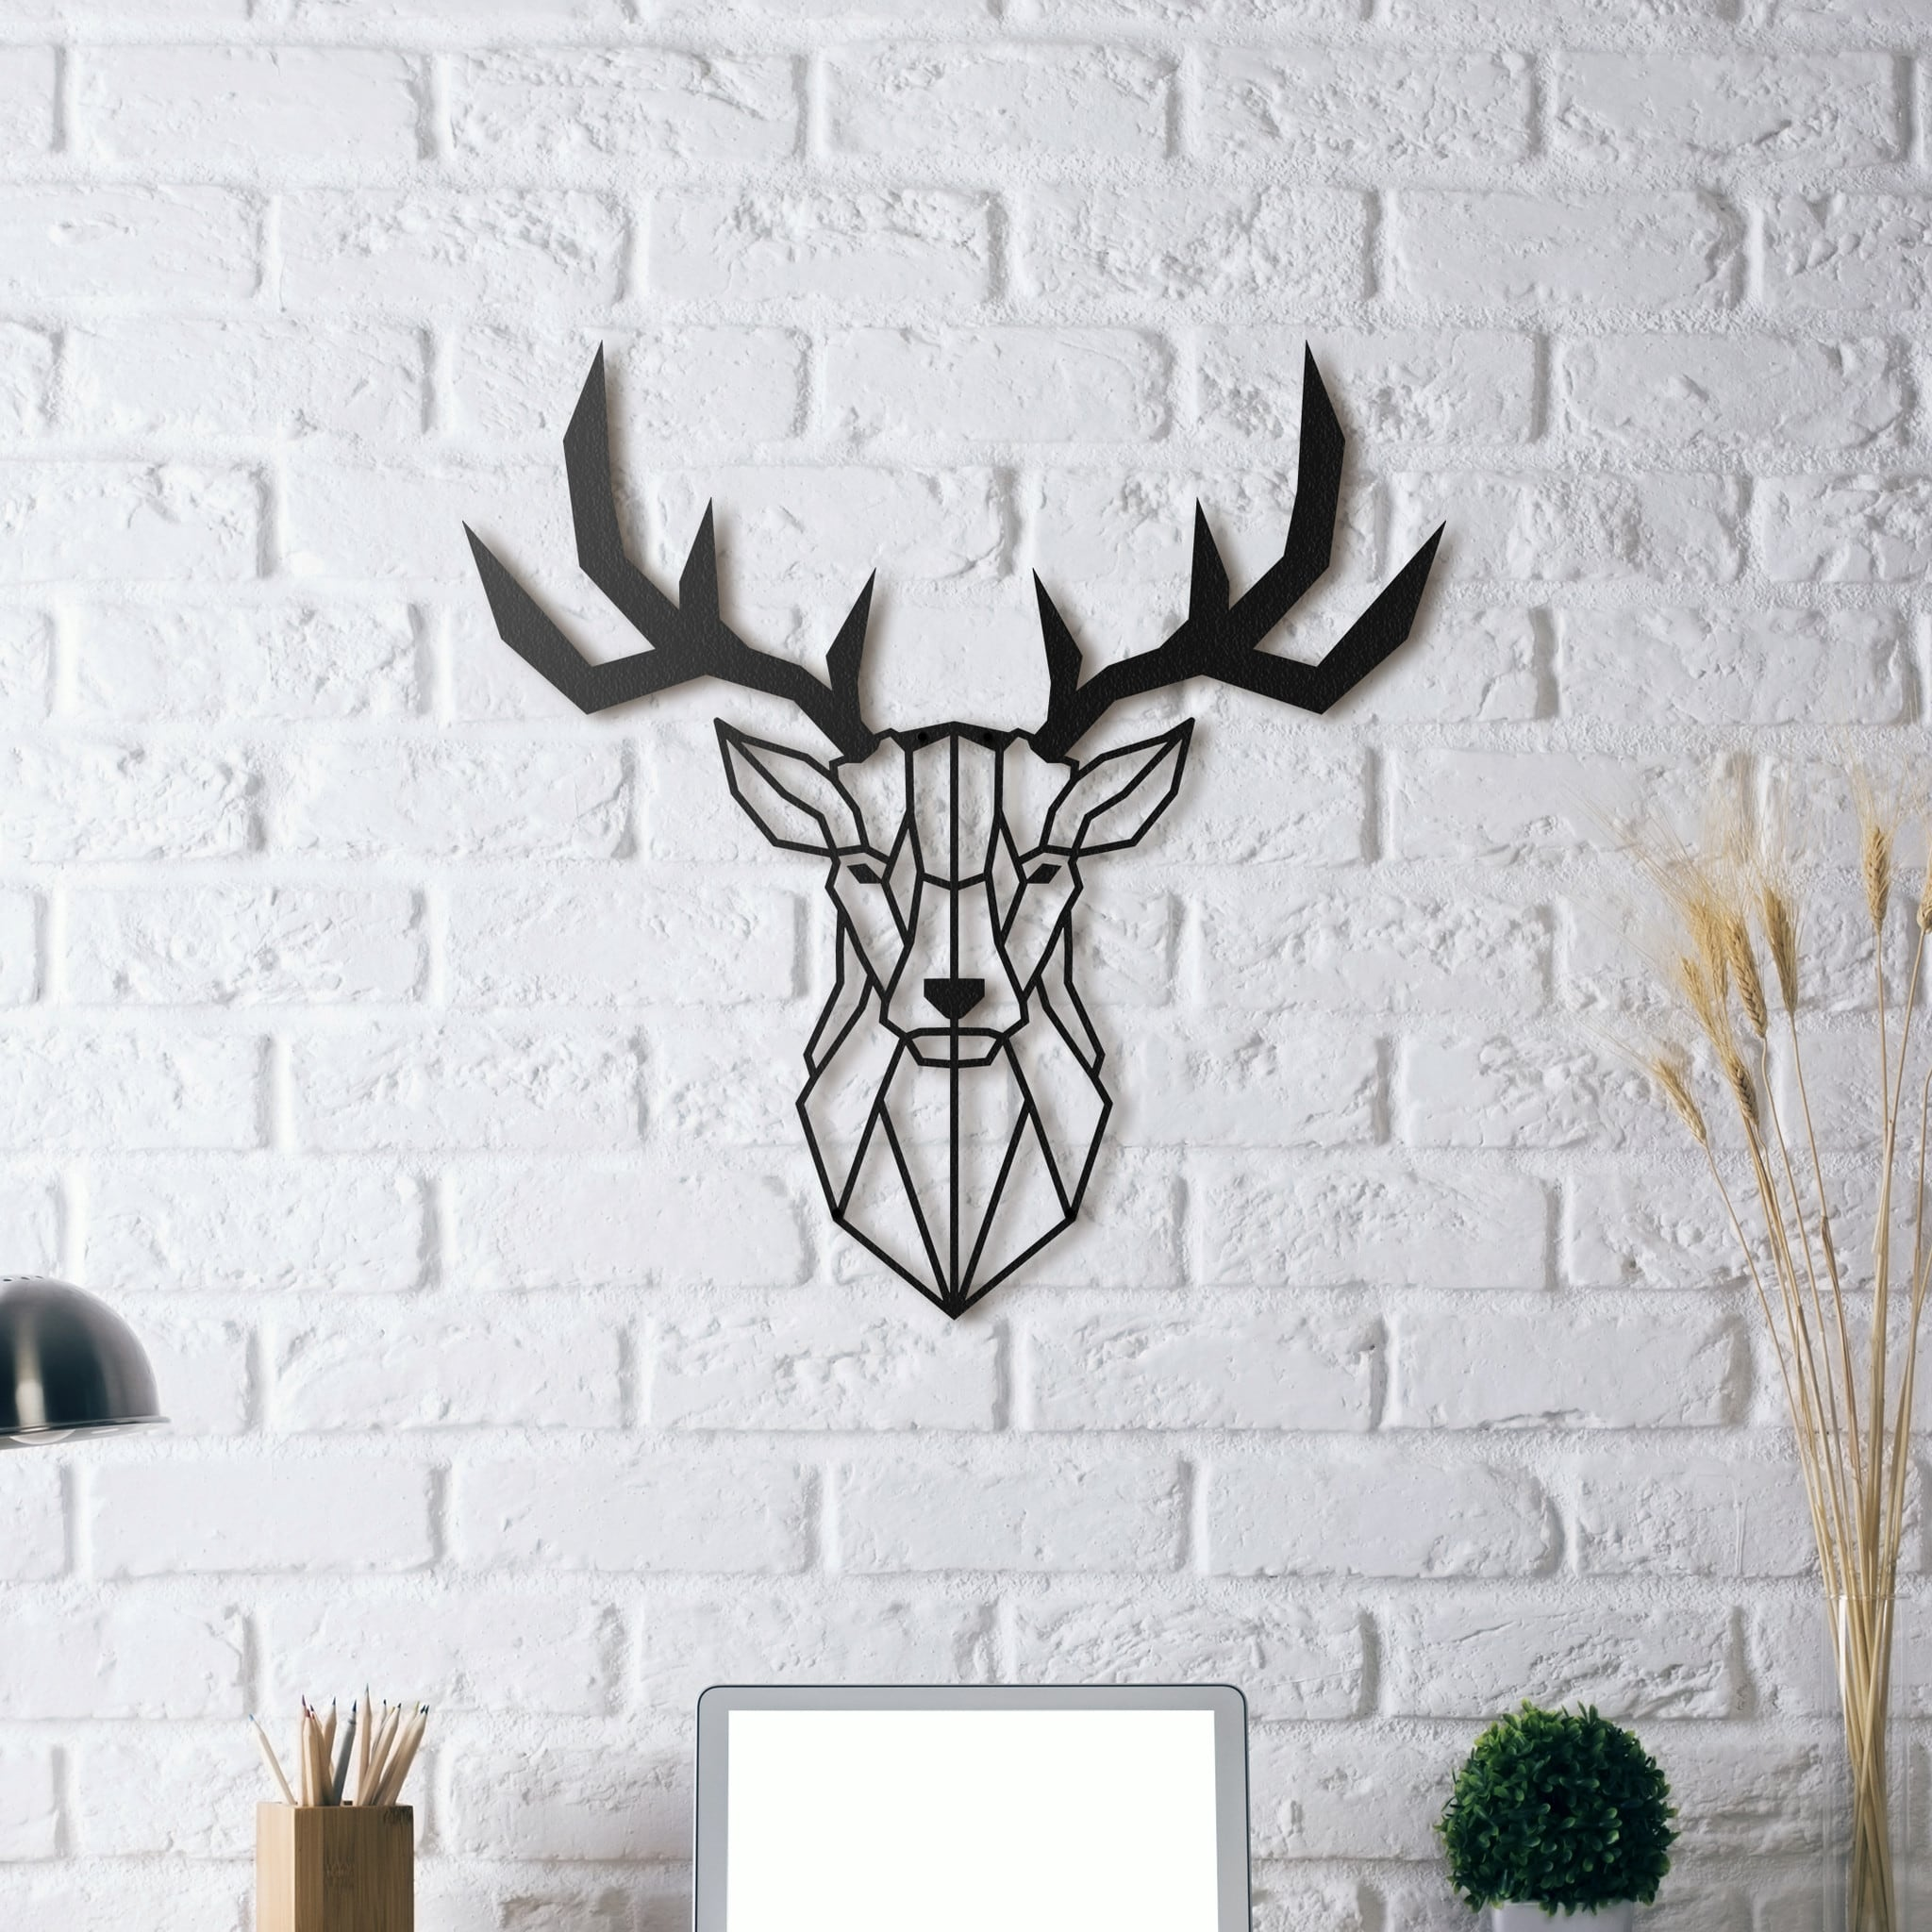 Stag head metal decoration artwall and co for Decoration murale en metal noir